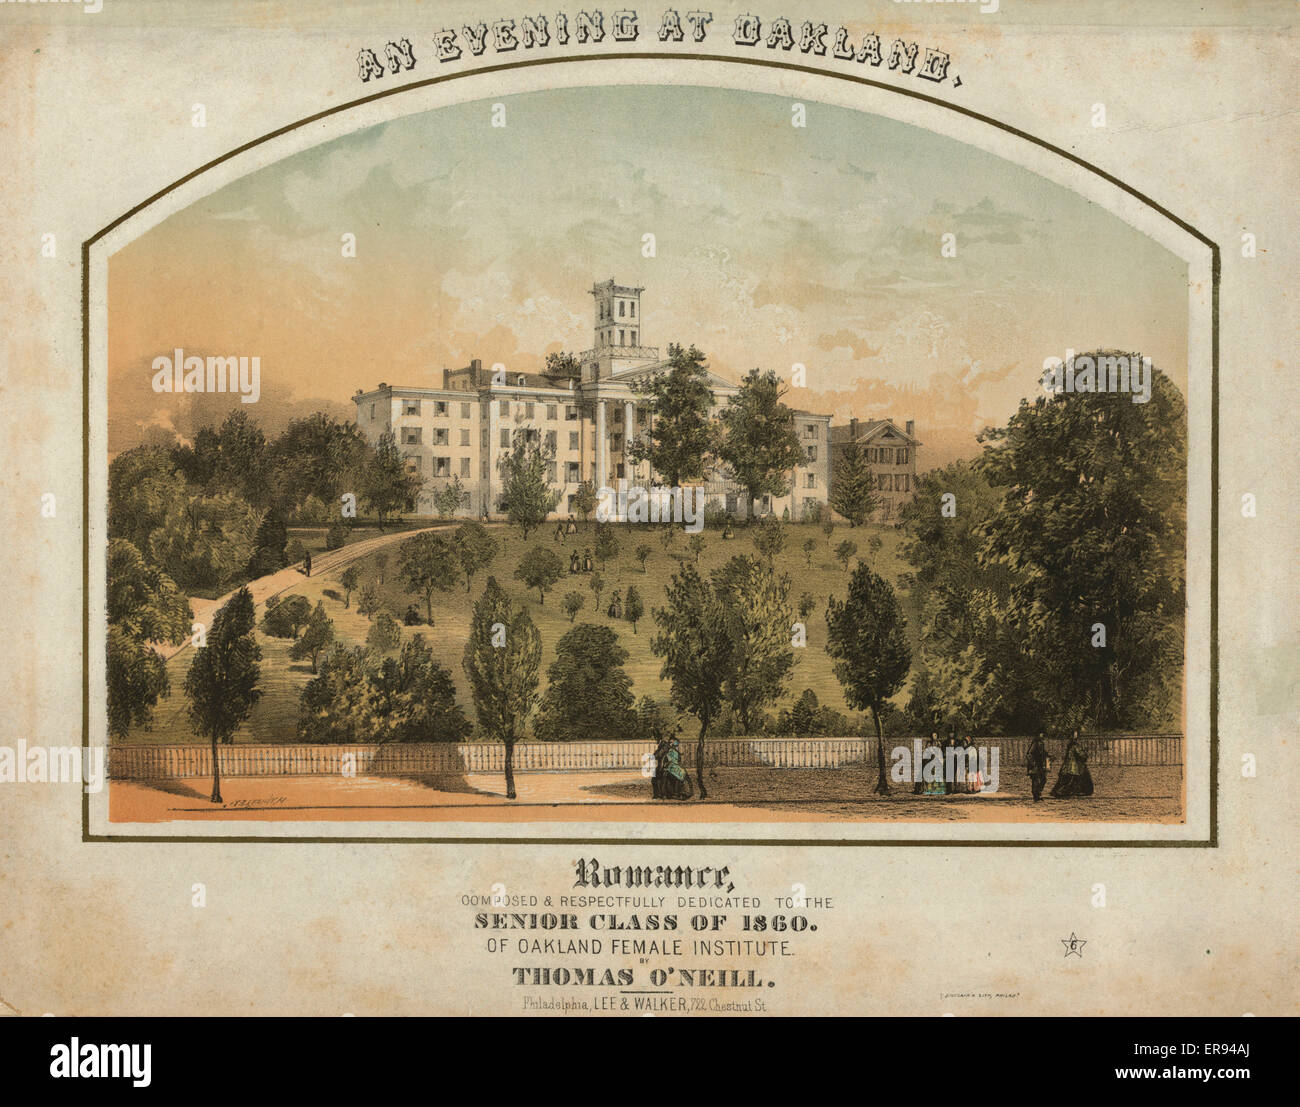 An Evening At Oakland Romance Composed Respectfully Dedicated Street To The Senior Class Of 1860 Female Institute By Thomas Oneill Print Shows A View From